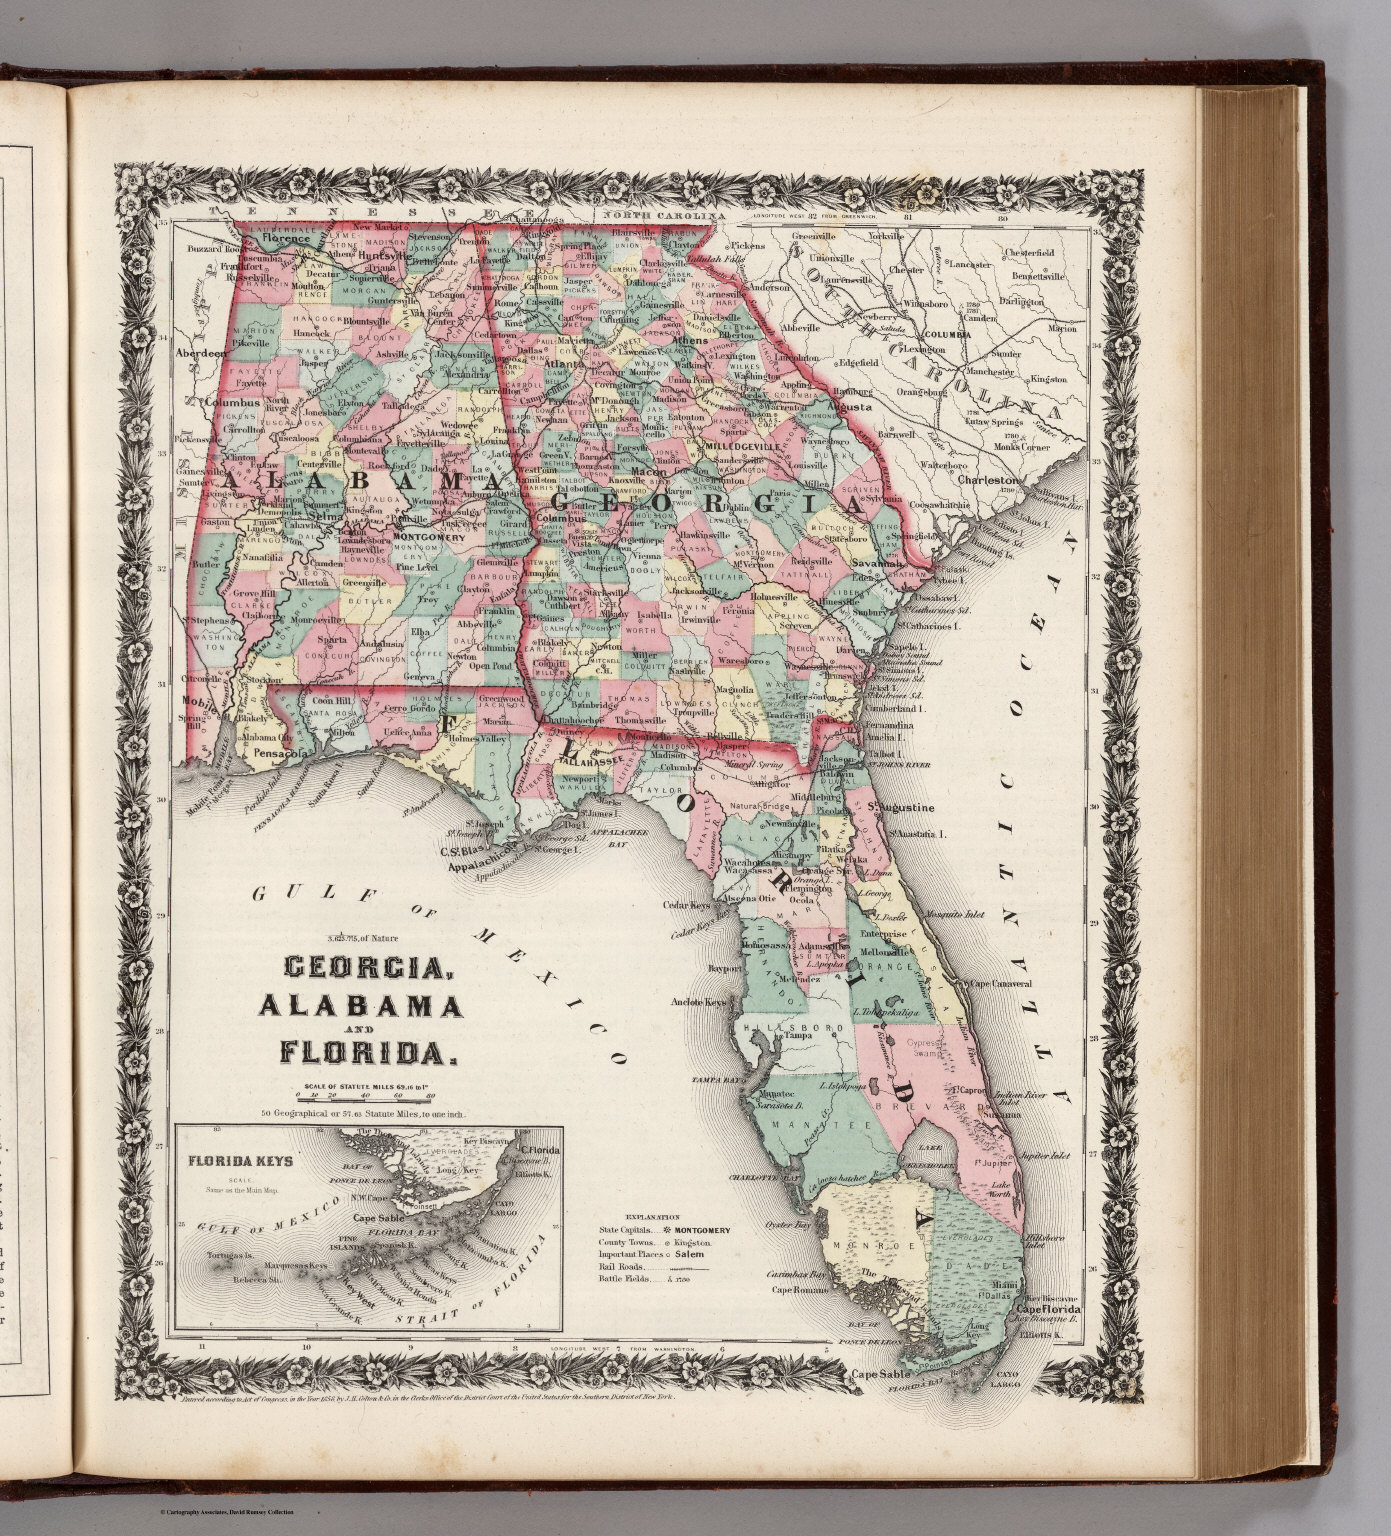 Georgia, Alabama, And Florida. - David Rumsey Historical Map Collection - Map Of Alabama And Florida